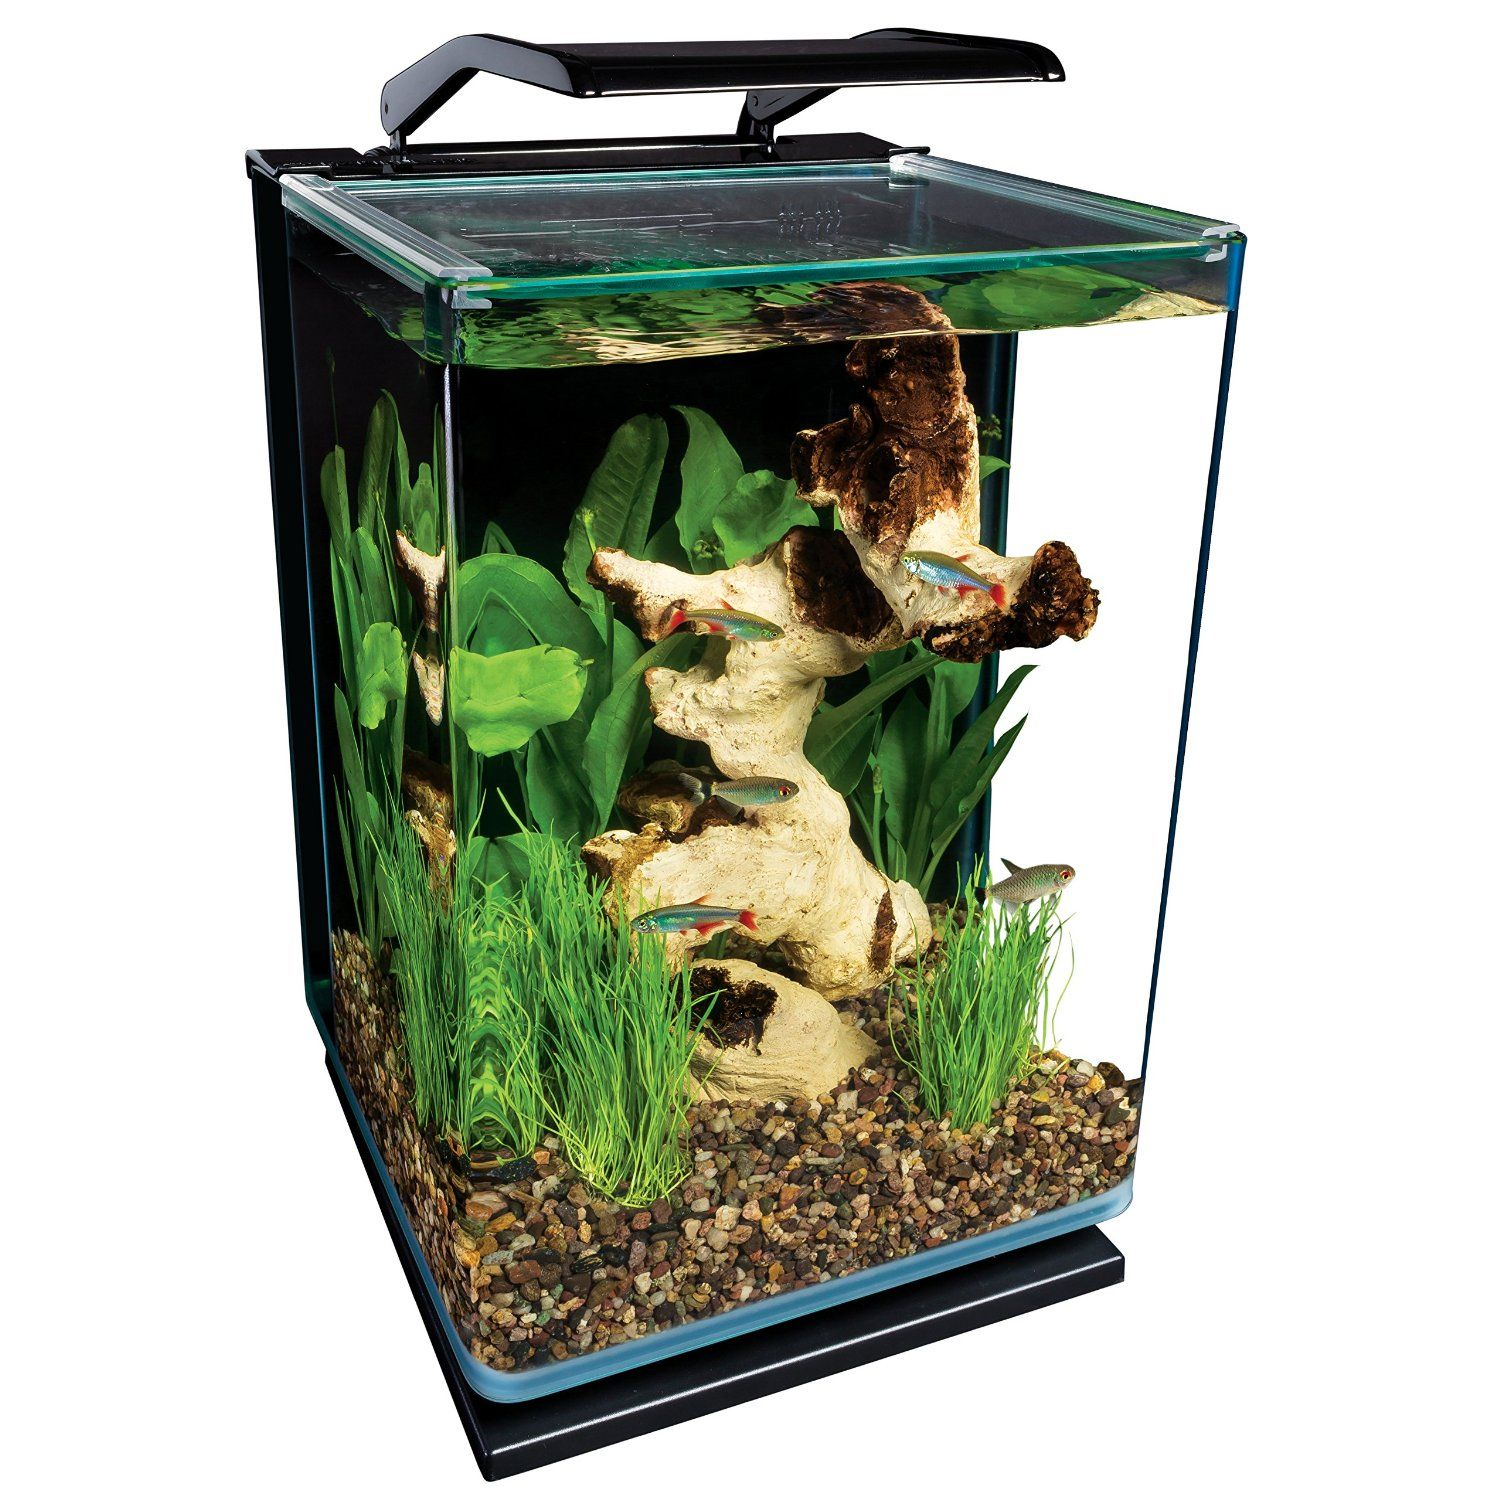 Because Of That Your Optimum Fish Tank Should Be Large Enough To Keep The Fish Healthy Best Betta Fish Tank You Glass Fish Tanks Aquarium Kit Betta Fish Tank